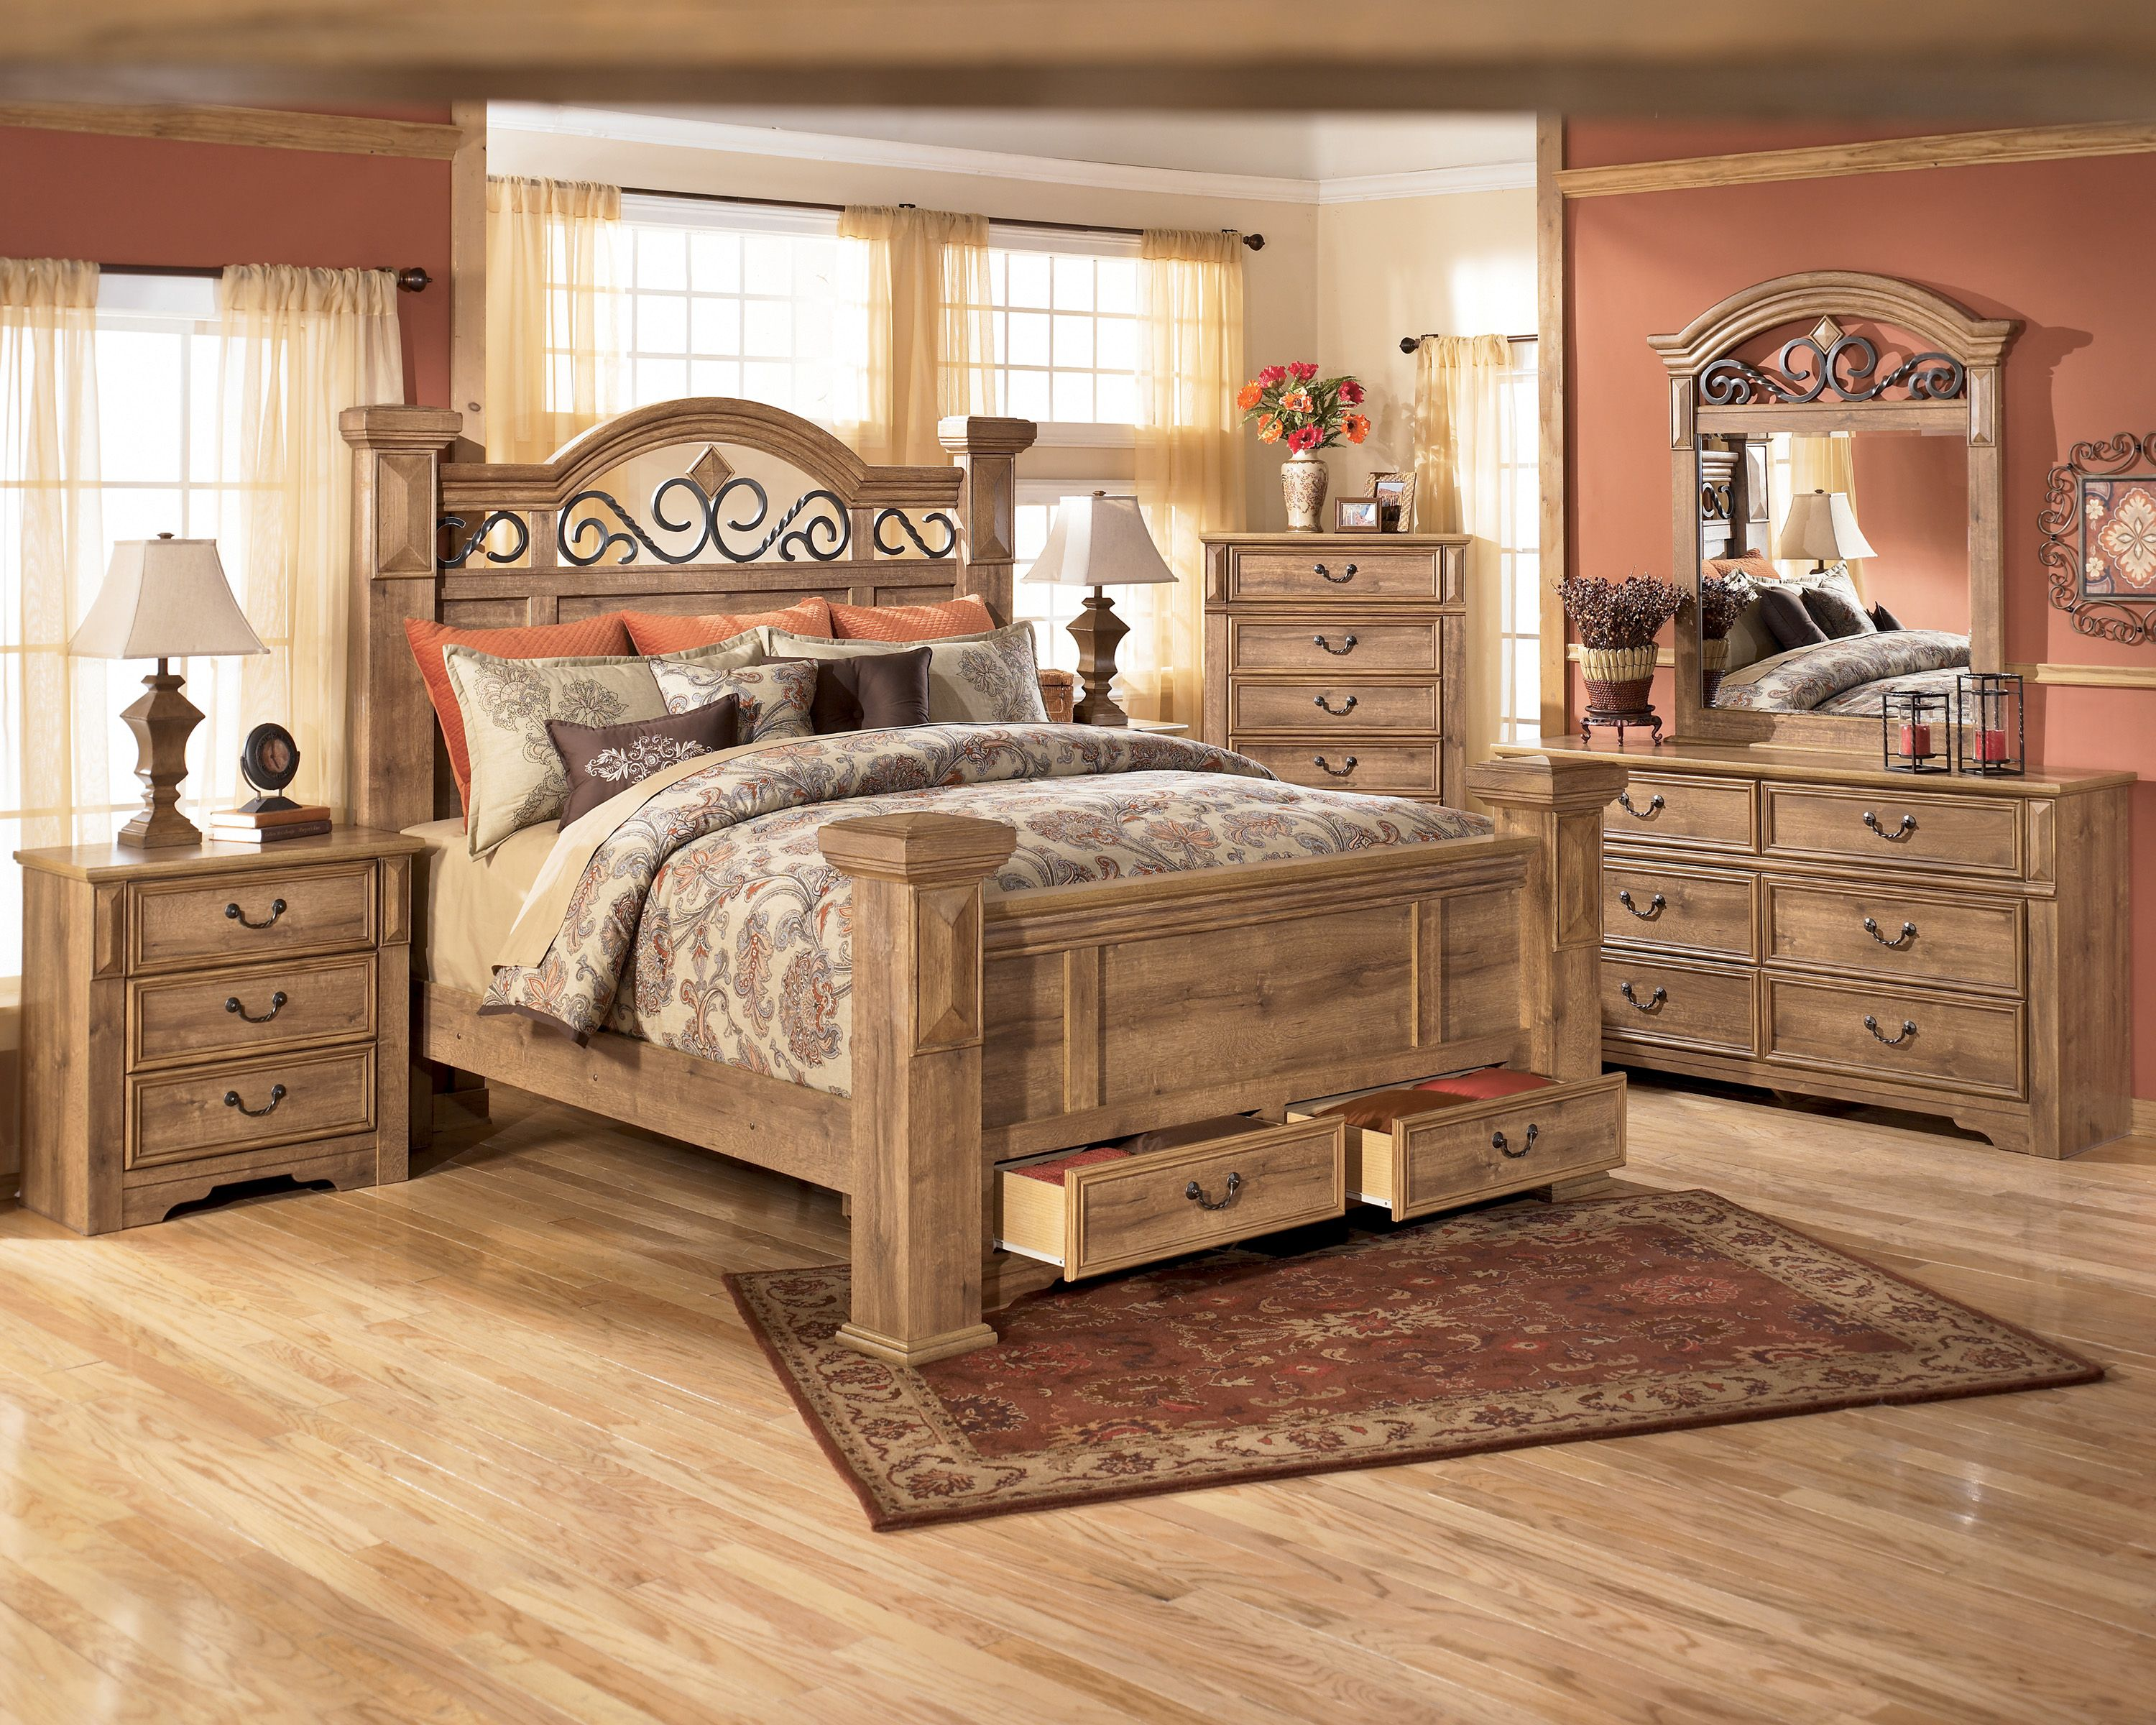 Bedroom Sets For Sale Best King Size Bed Set Rosalinda  King Beds  Pinterest  King